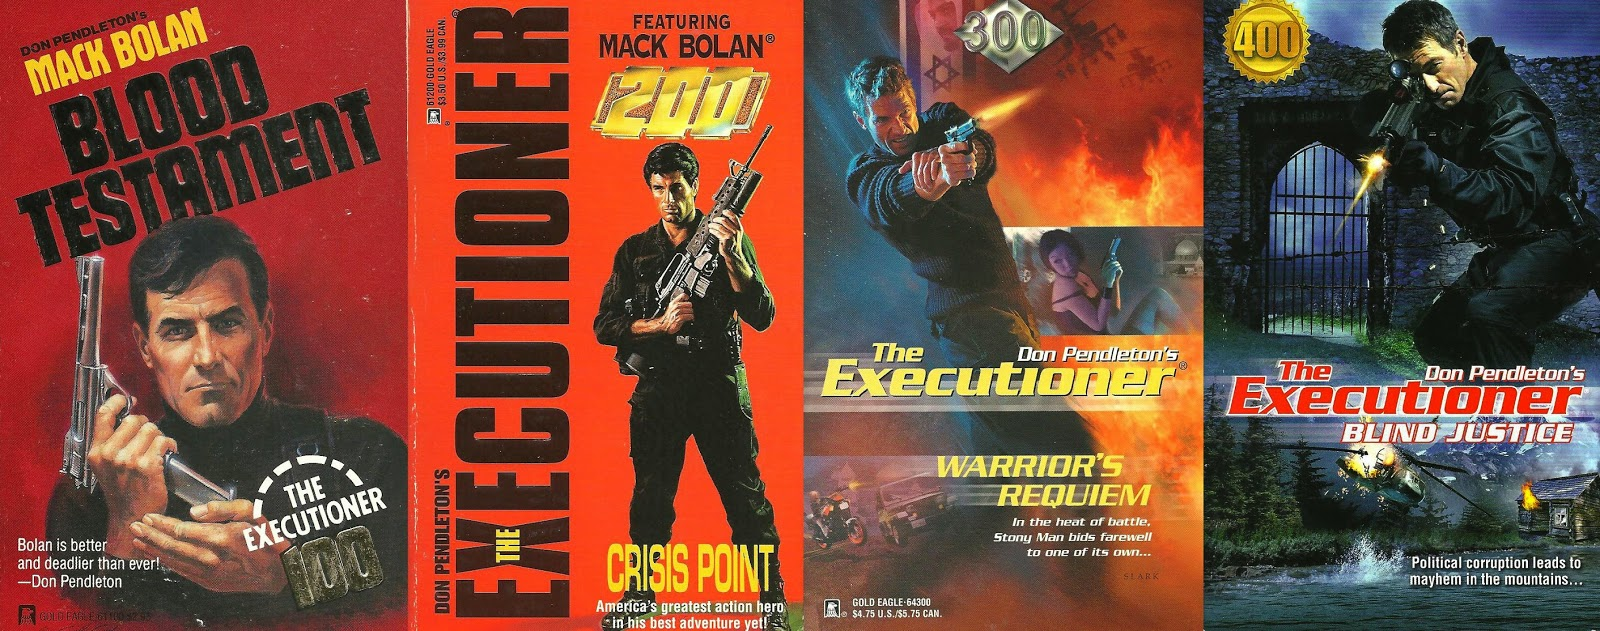 The Executioner #s 100, 200, 300 and 400